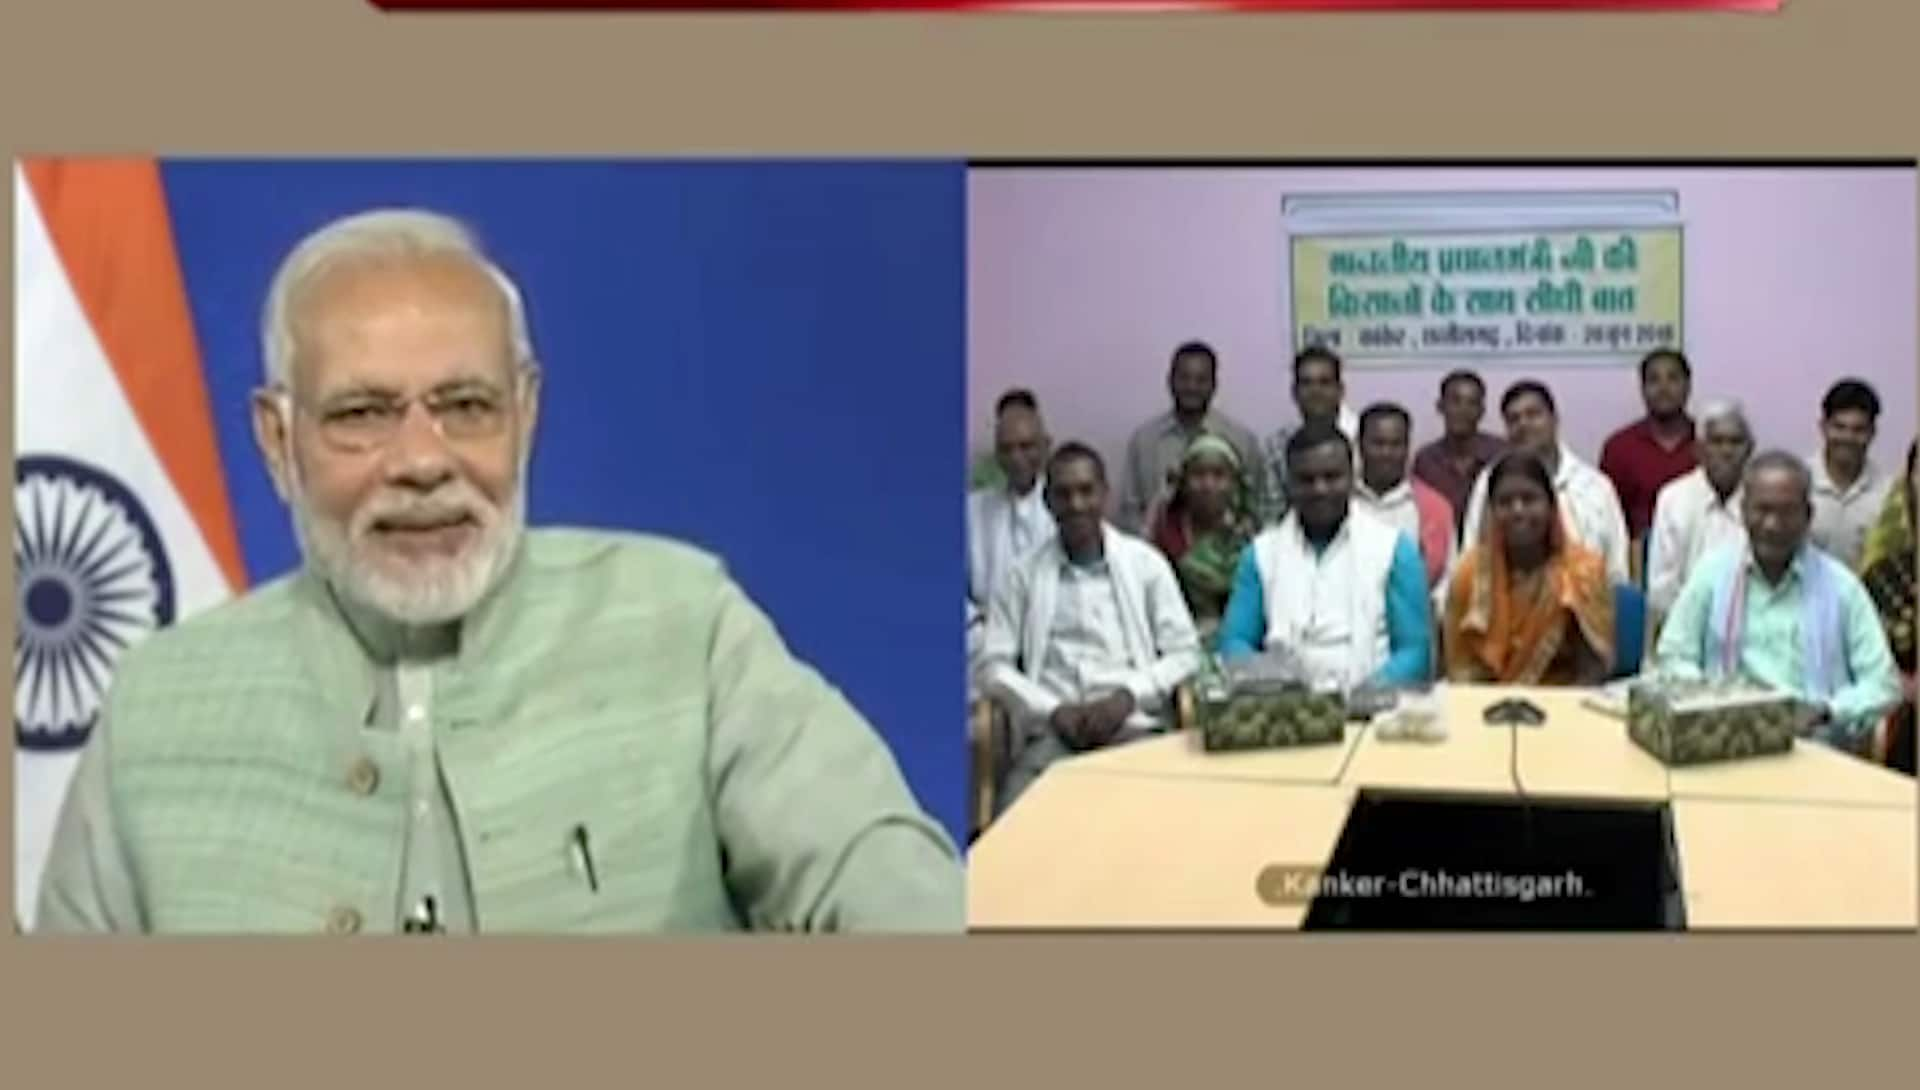 Video: Farmer woman rubbishes media reports that suggested PM Modi used her to score points